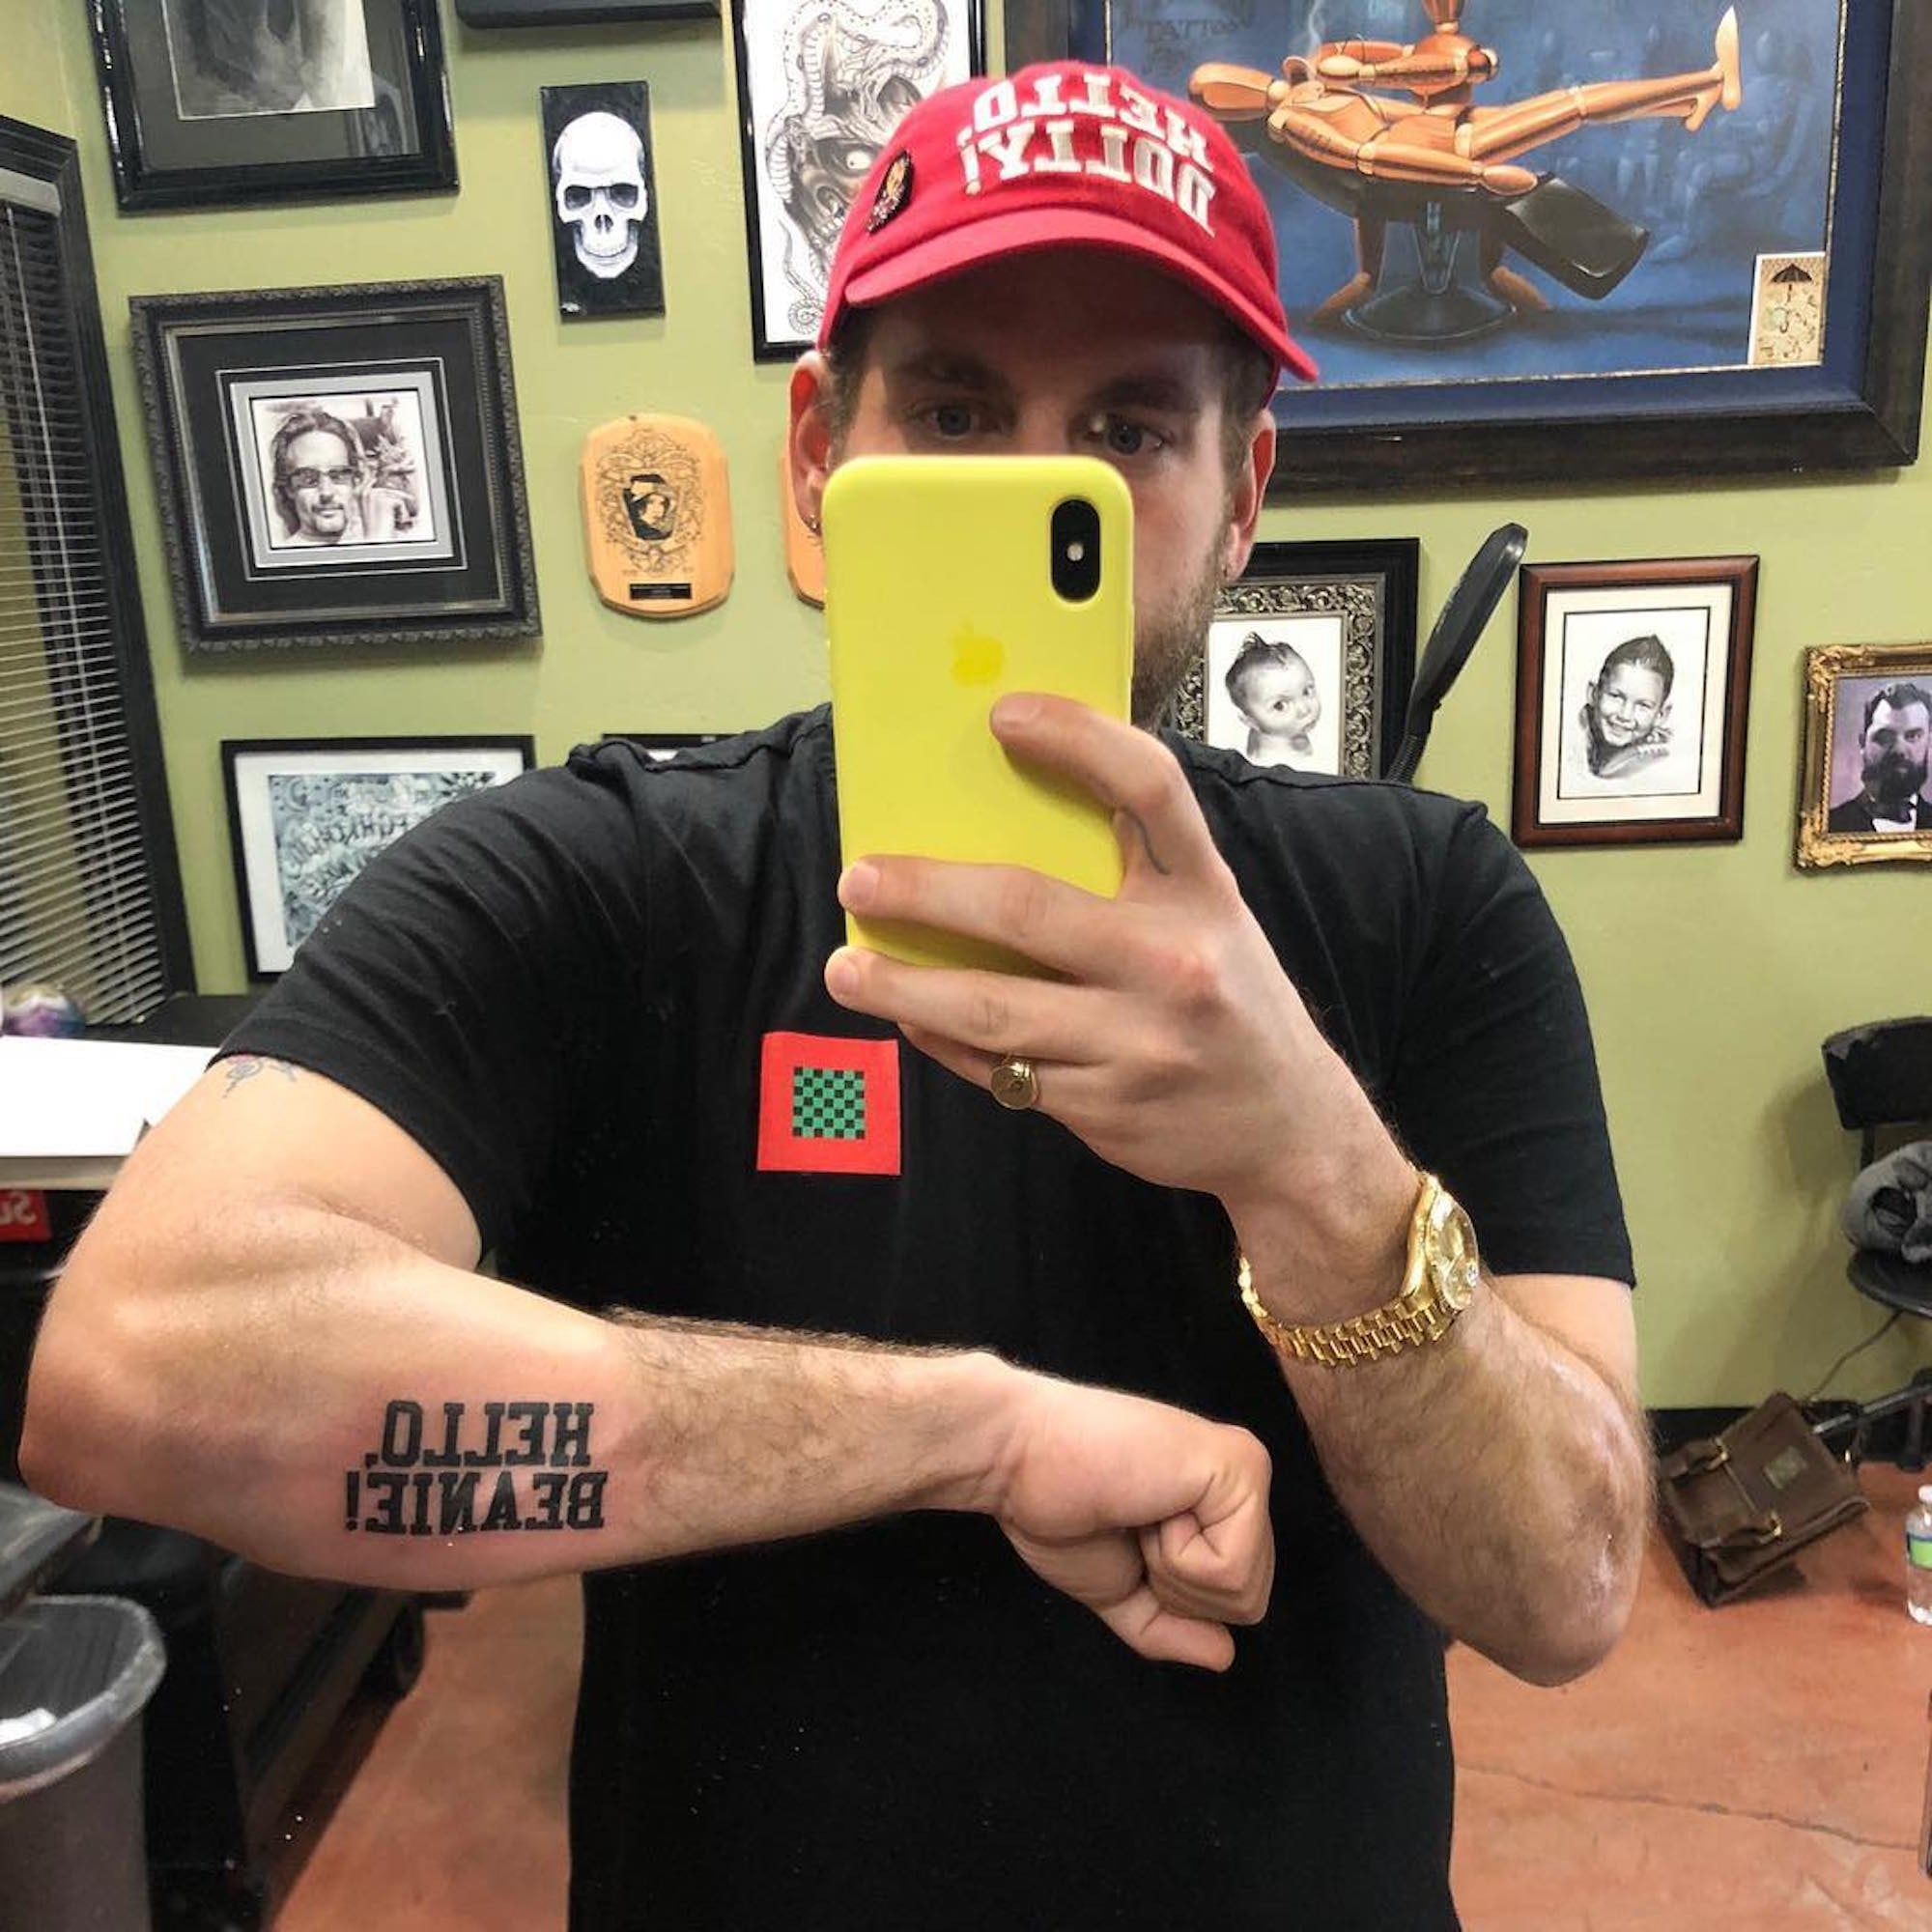 23c121456d2 Jonah Hill s Tattoo of Sister s Name